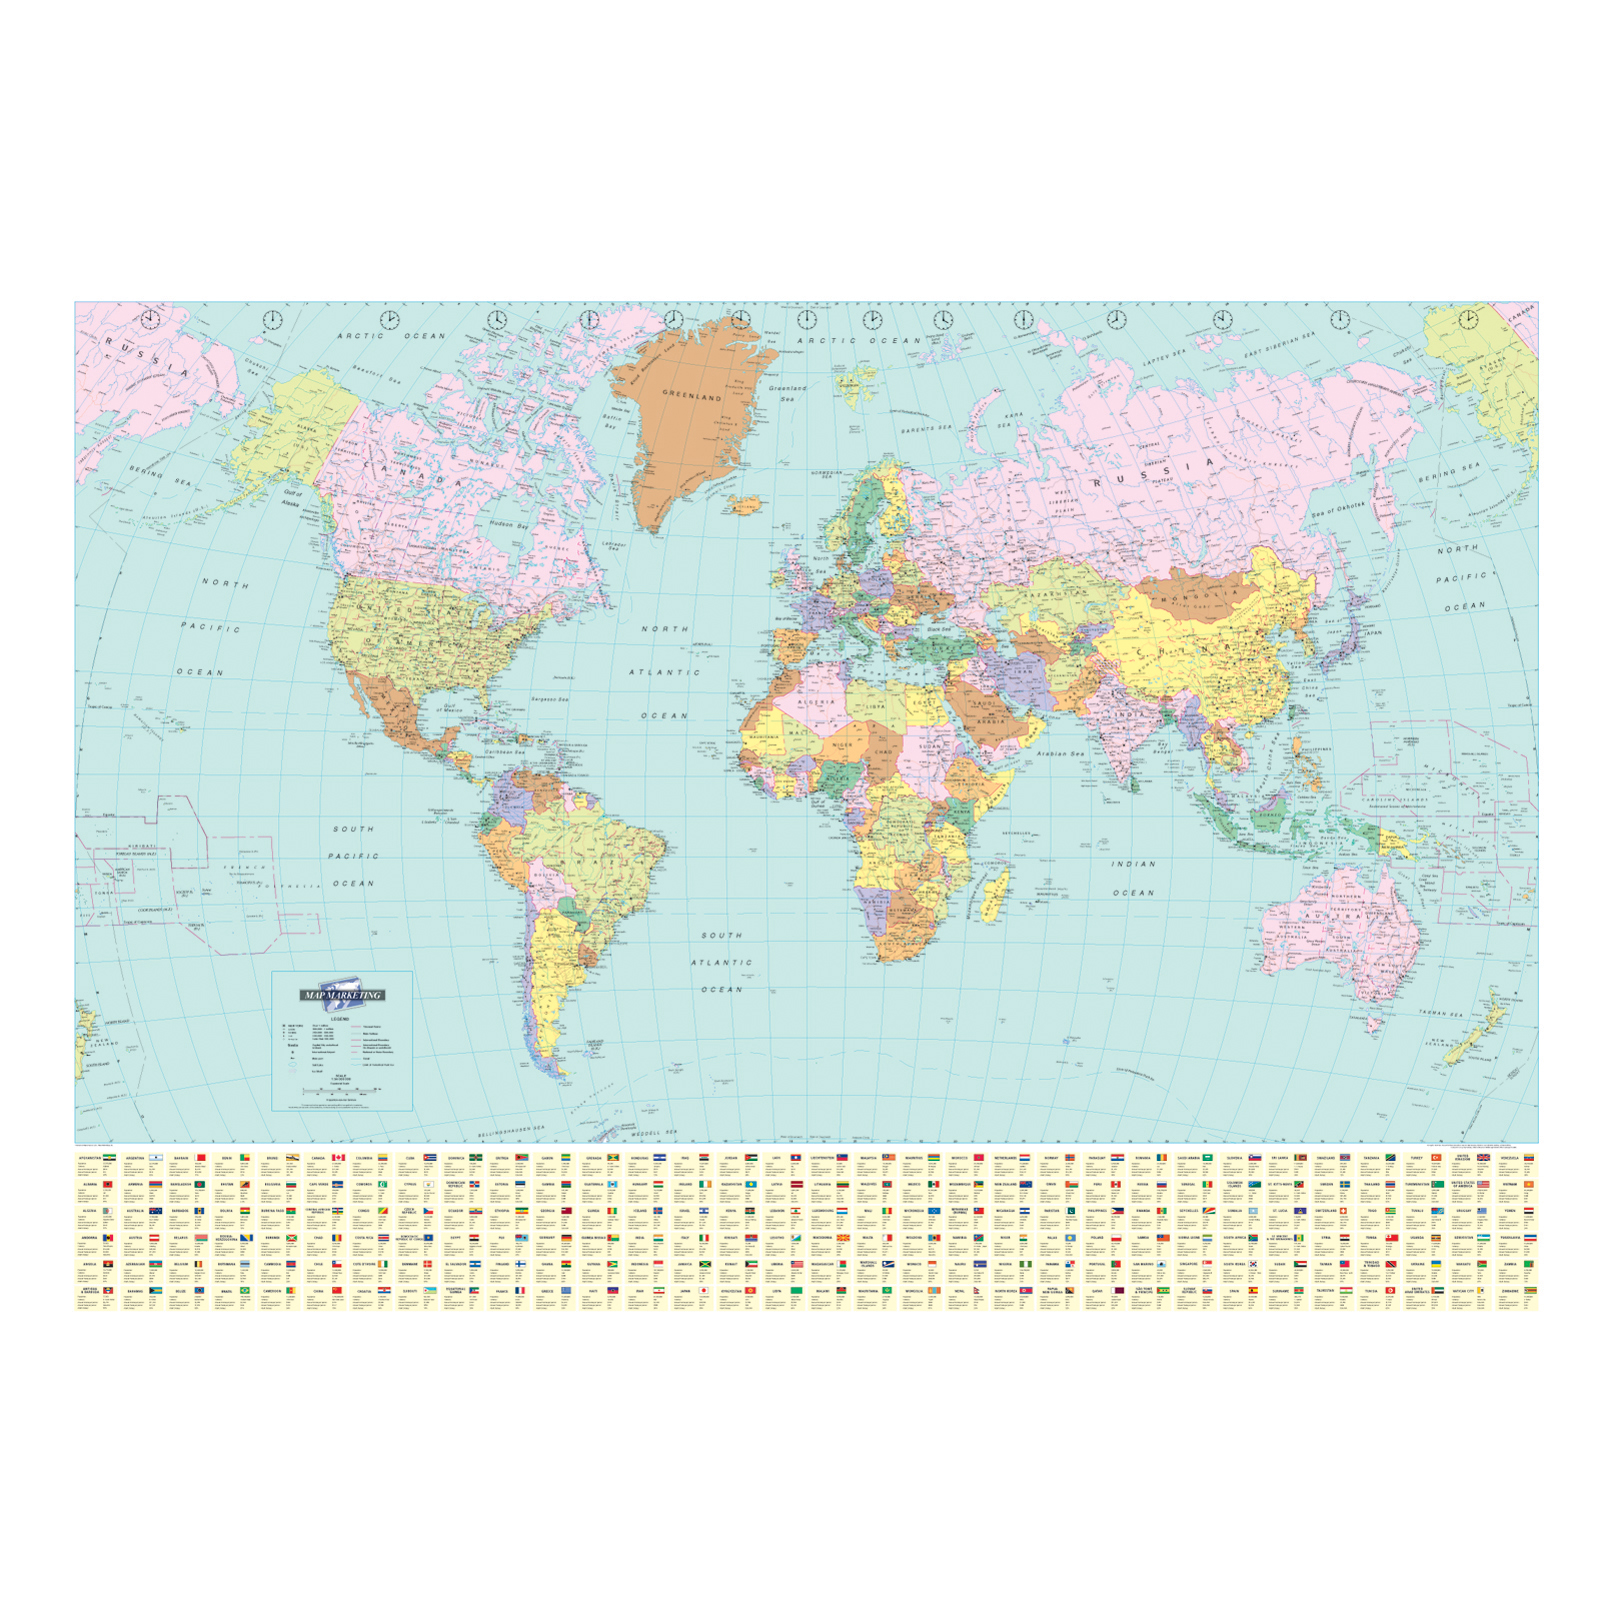 Image for Map Marketing World Political Map Unframed 537 Miles to 1 inch Scale W1200xH830mm Ref BEX